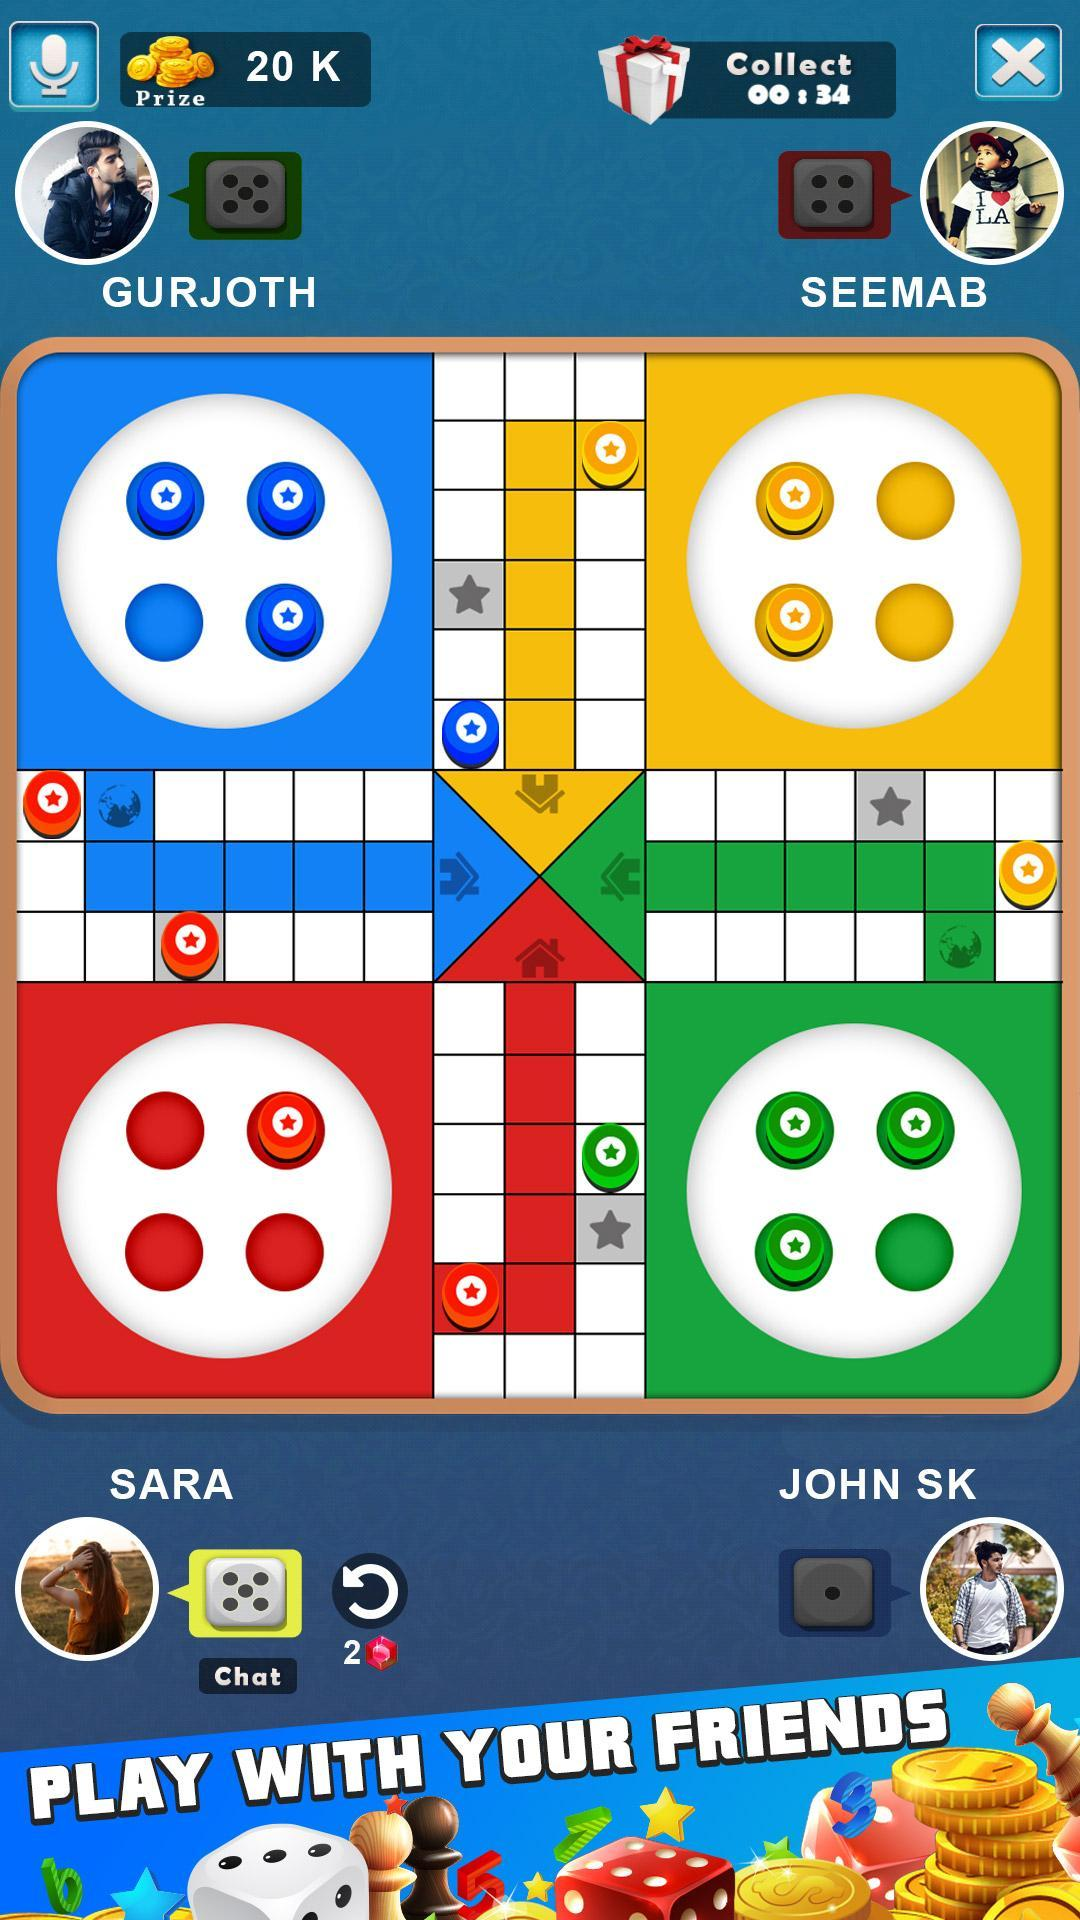 King of Ludo Dice Game with Free Voice Chat 2020 1.5.2 Screenshot 7